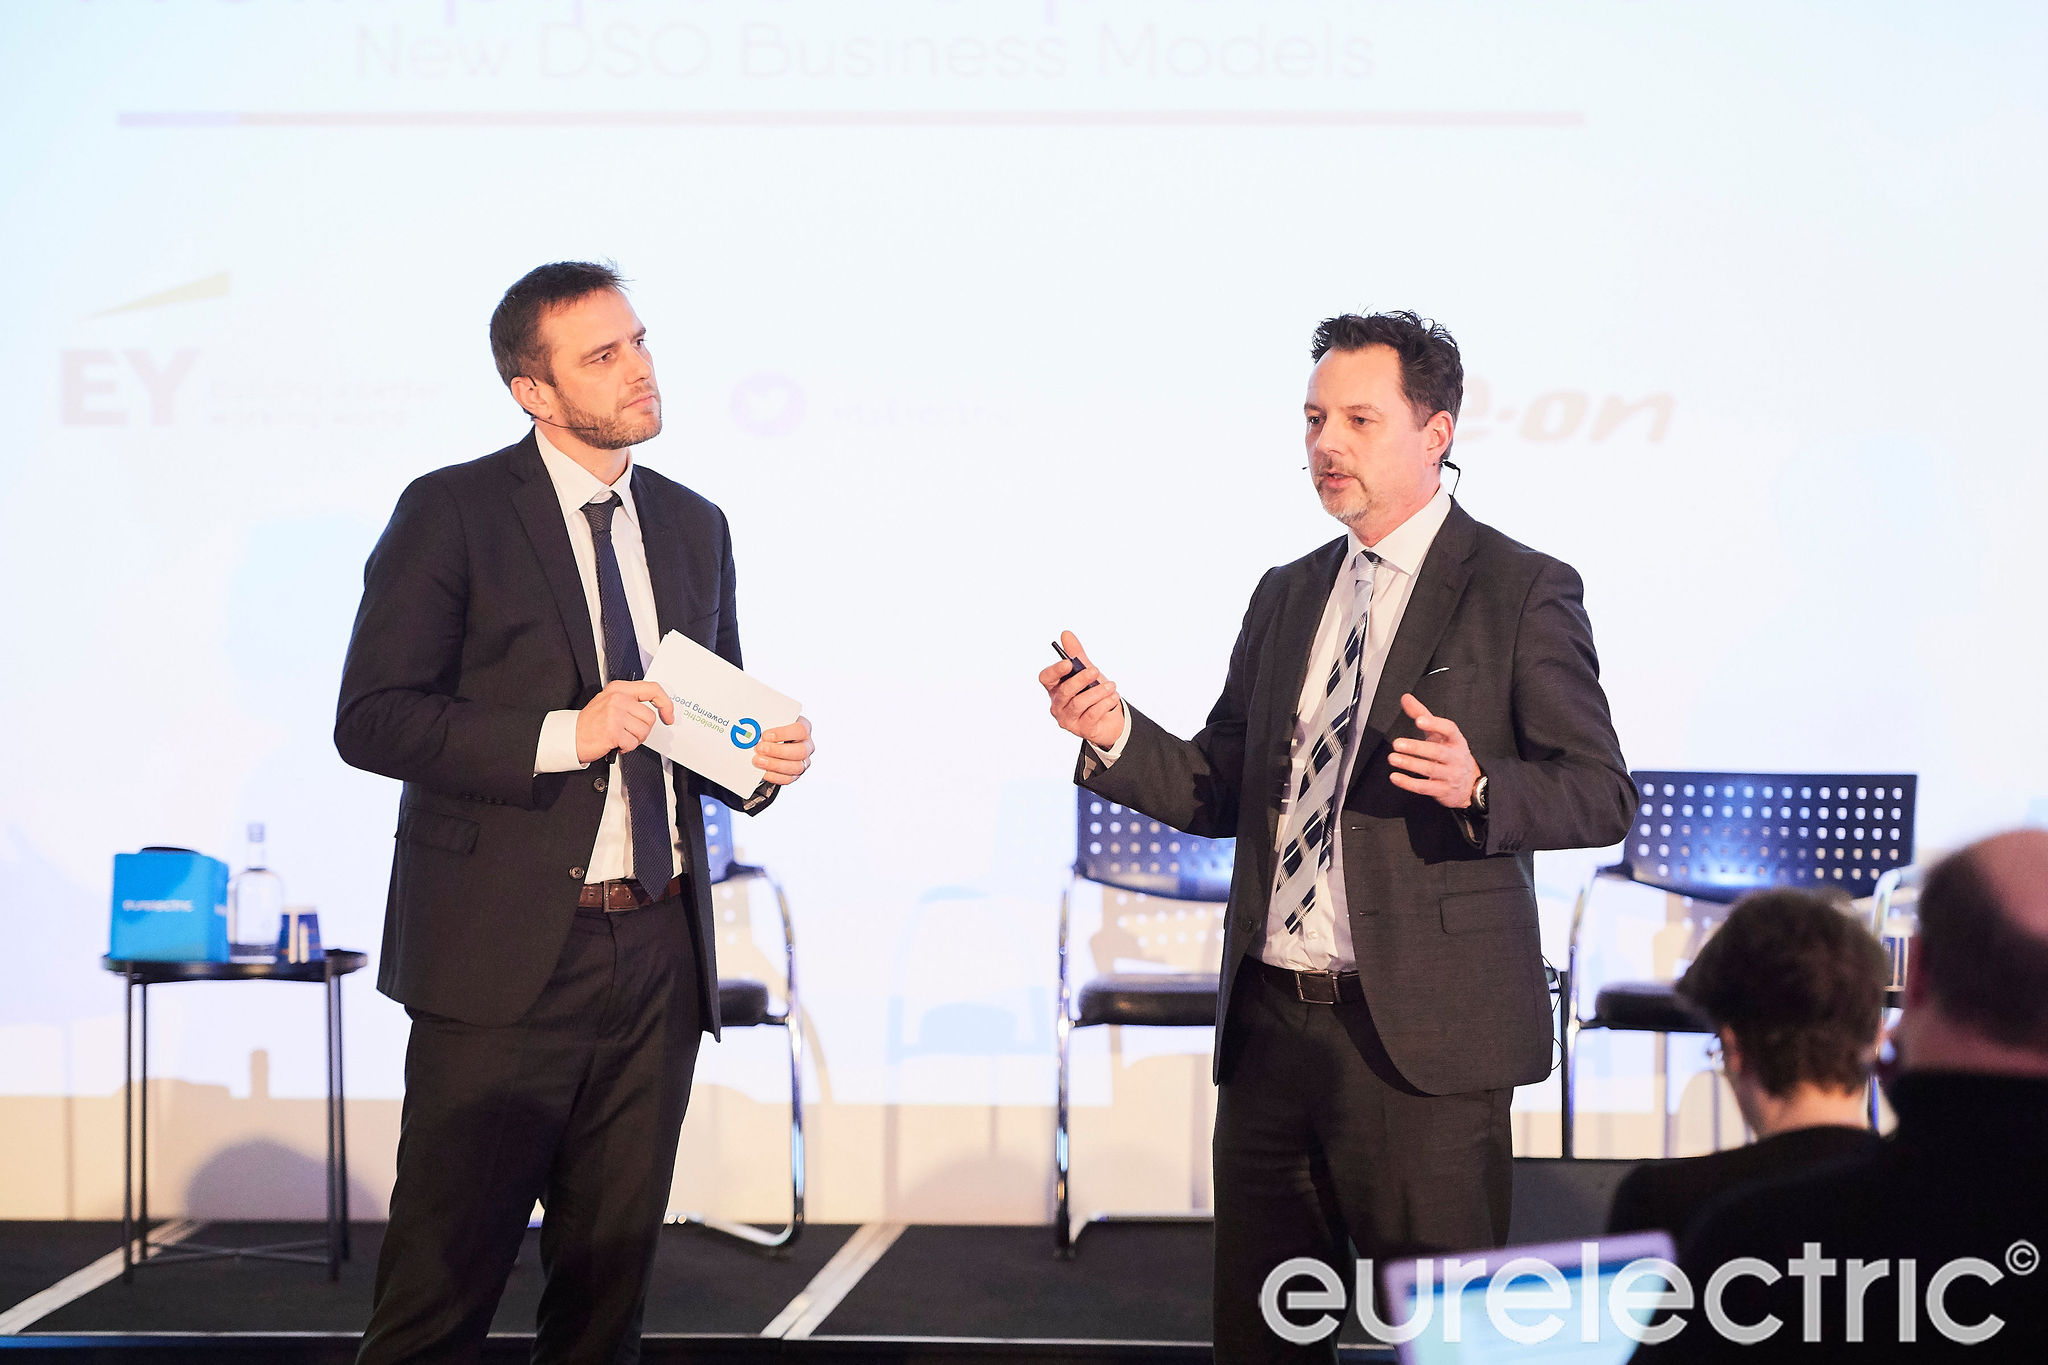 DSO 2.0: Two Smart Examples Bringing Visions to National and European Reality (In the photo: Kristian Ruby & Markus Merkel)